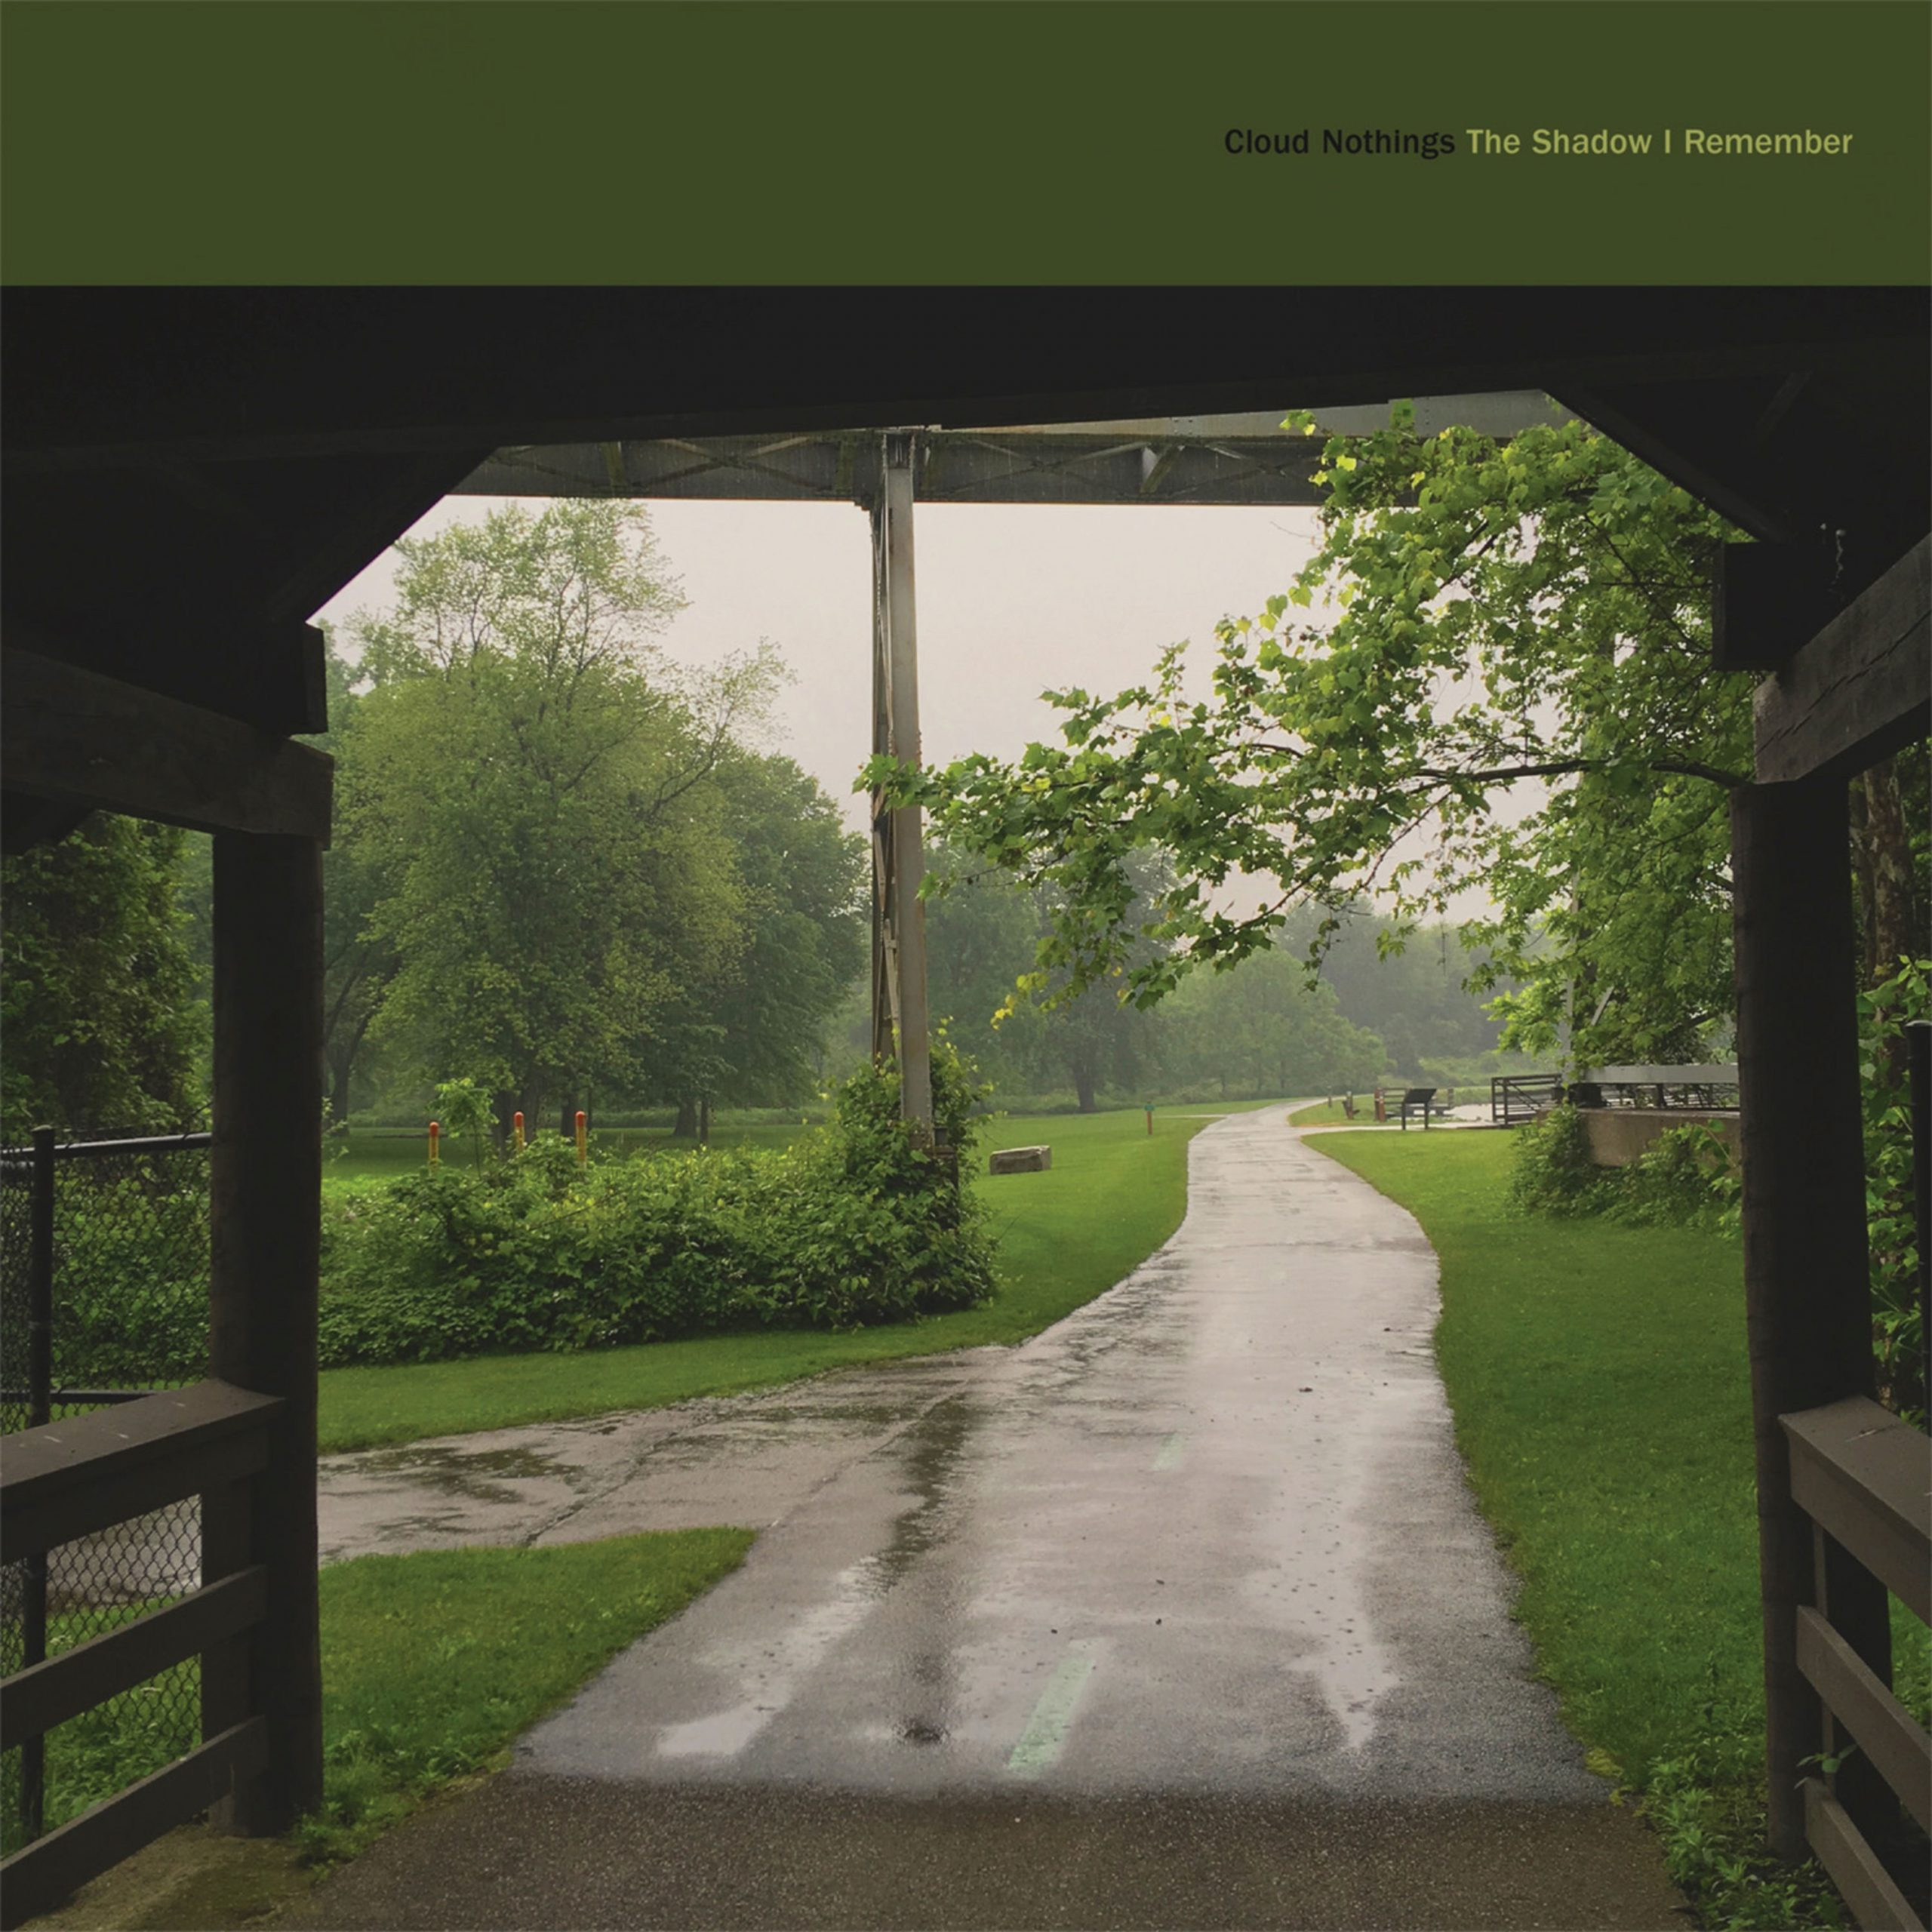 Cloud Nothings new 2021 album The Shadow I Remember cover art